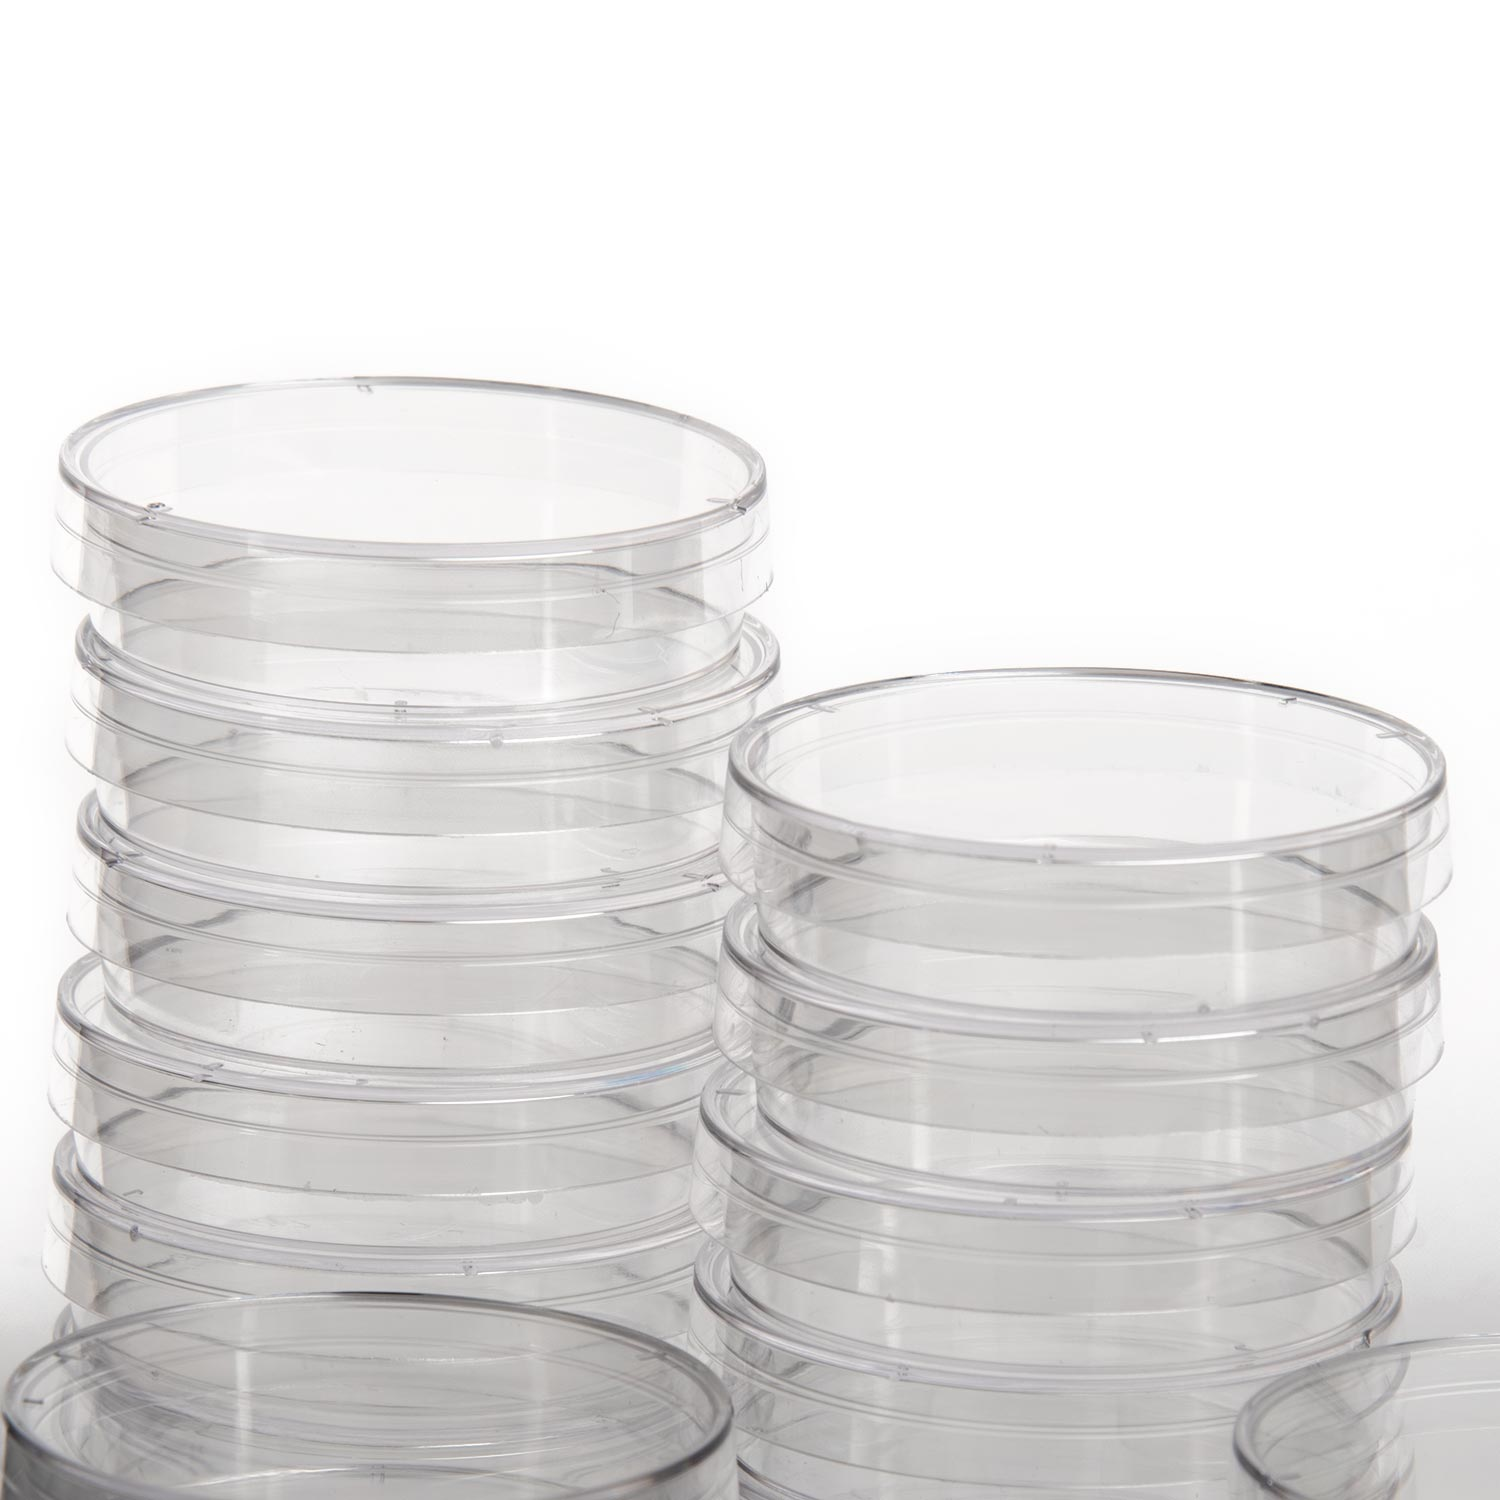 Petri Dish - 51 mm (2 in) - 20 pack